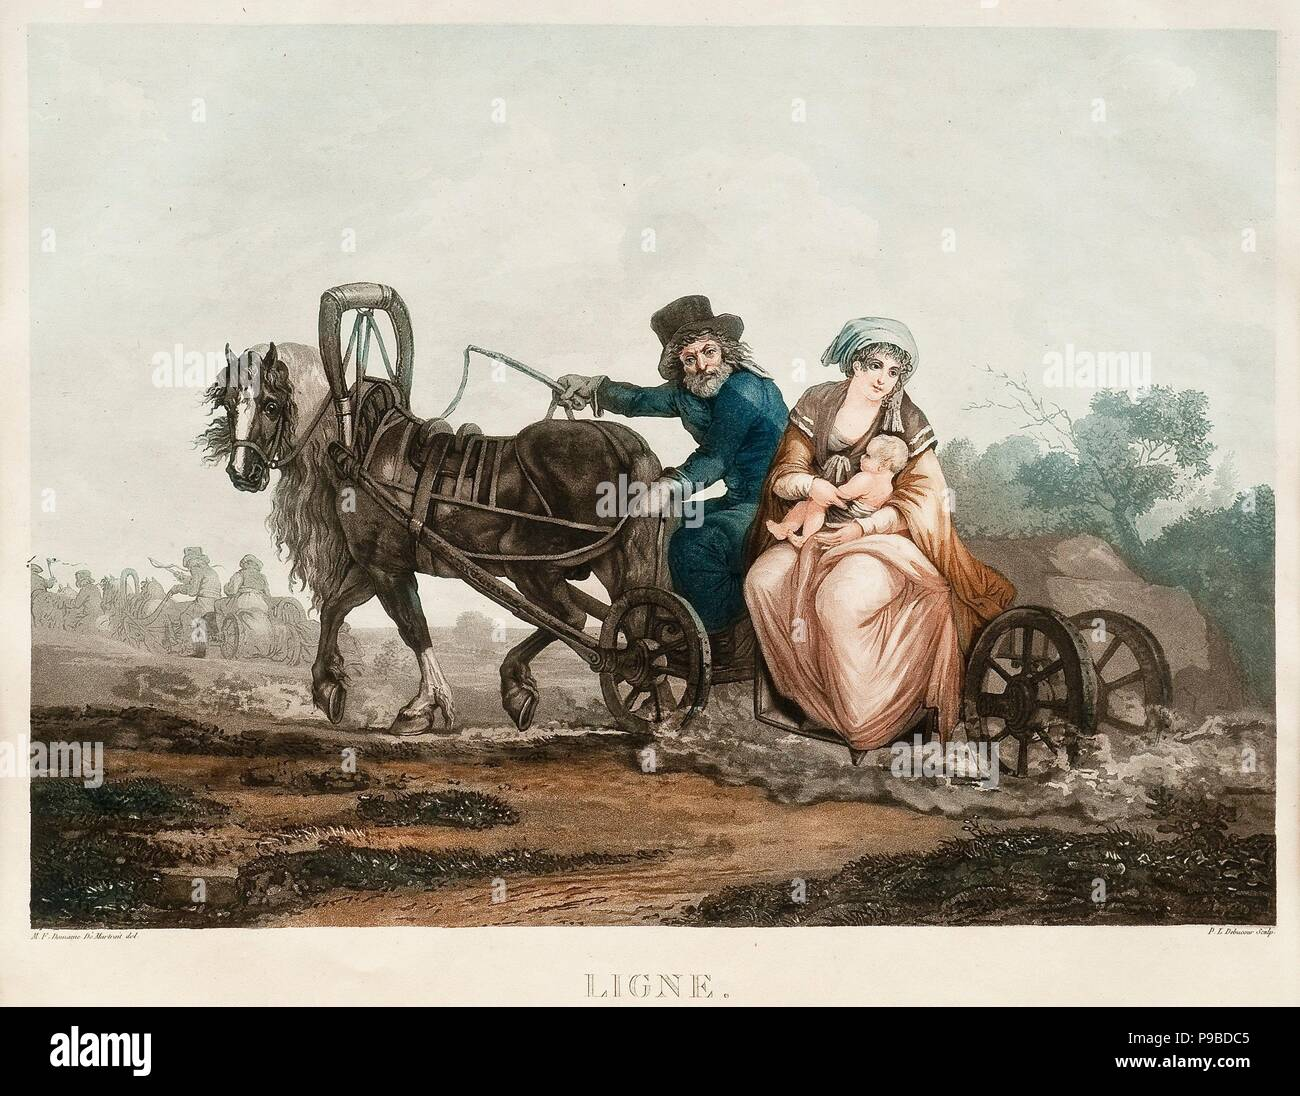 Sledge driving. Museum: PRIVATE COLLECTION. Stock Photo